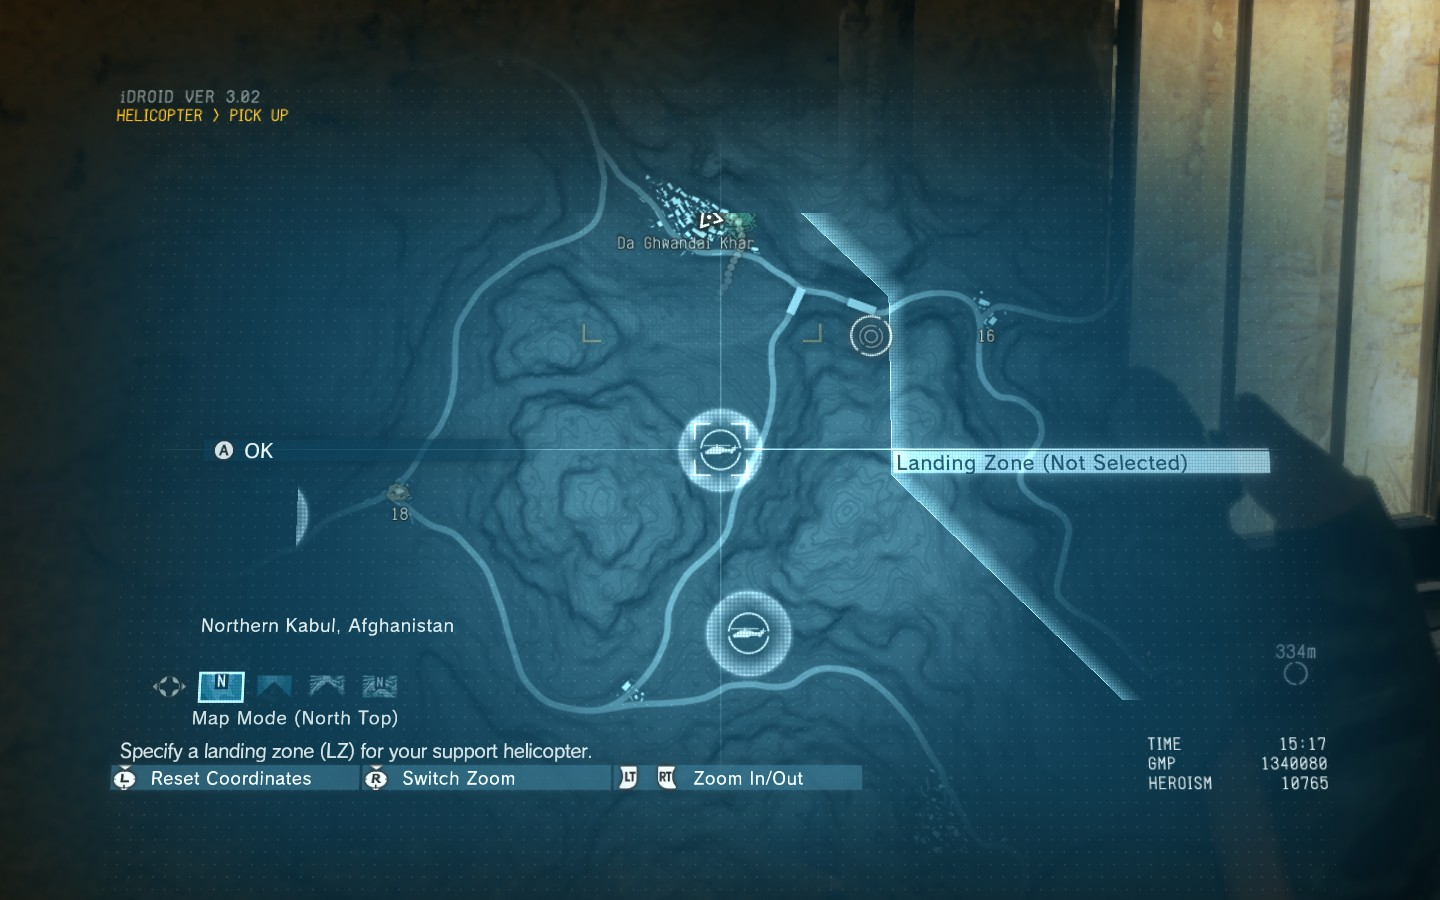 Steam Community Guide How To Remain Undetected From Skulls 3 Way Navigation Switch 2 If You Have Headed The Plot Set Lz Soldiers Are Inevitable They Cant Be Attacked Distracted And When Near In